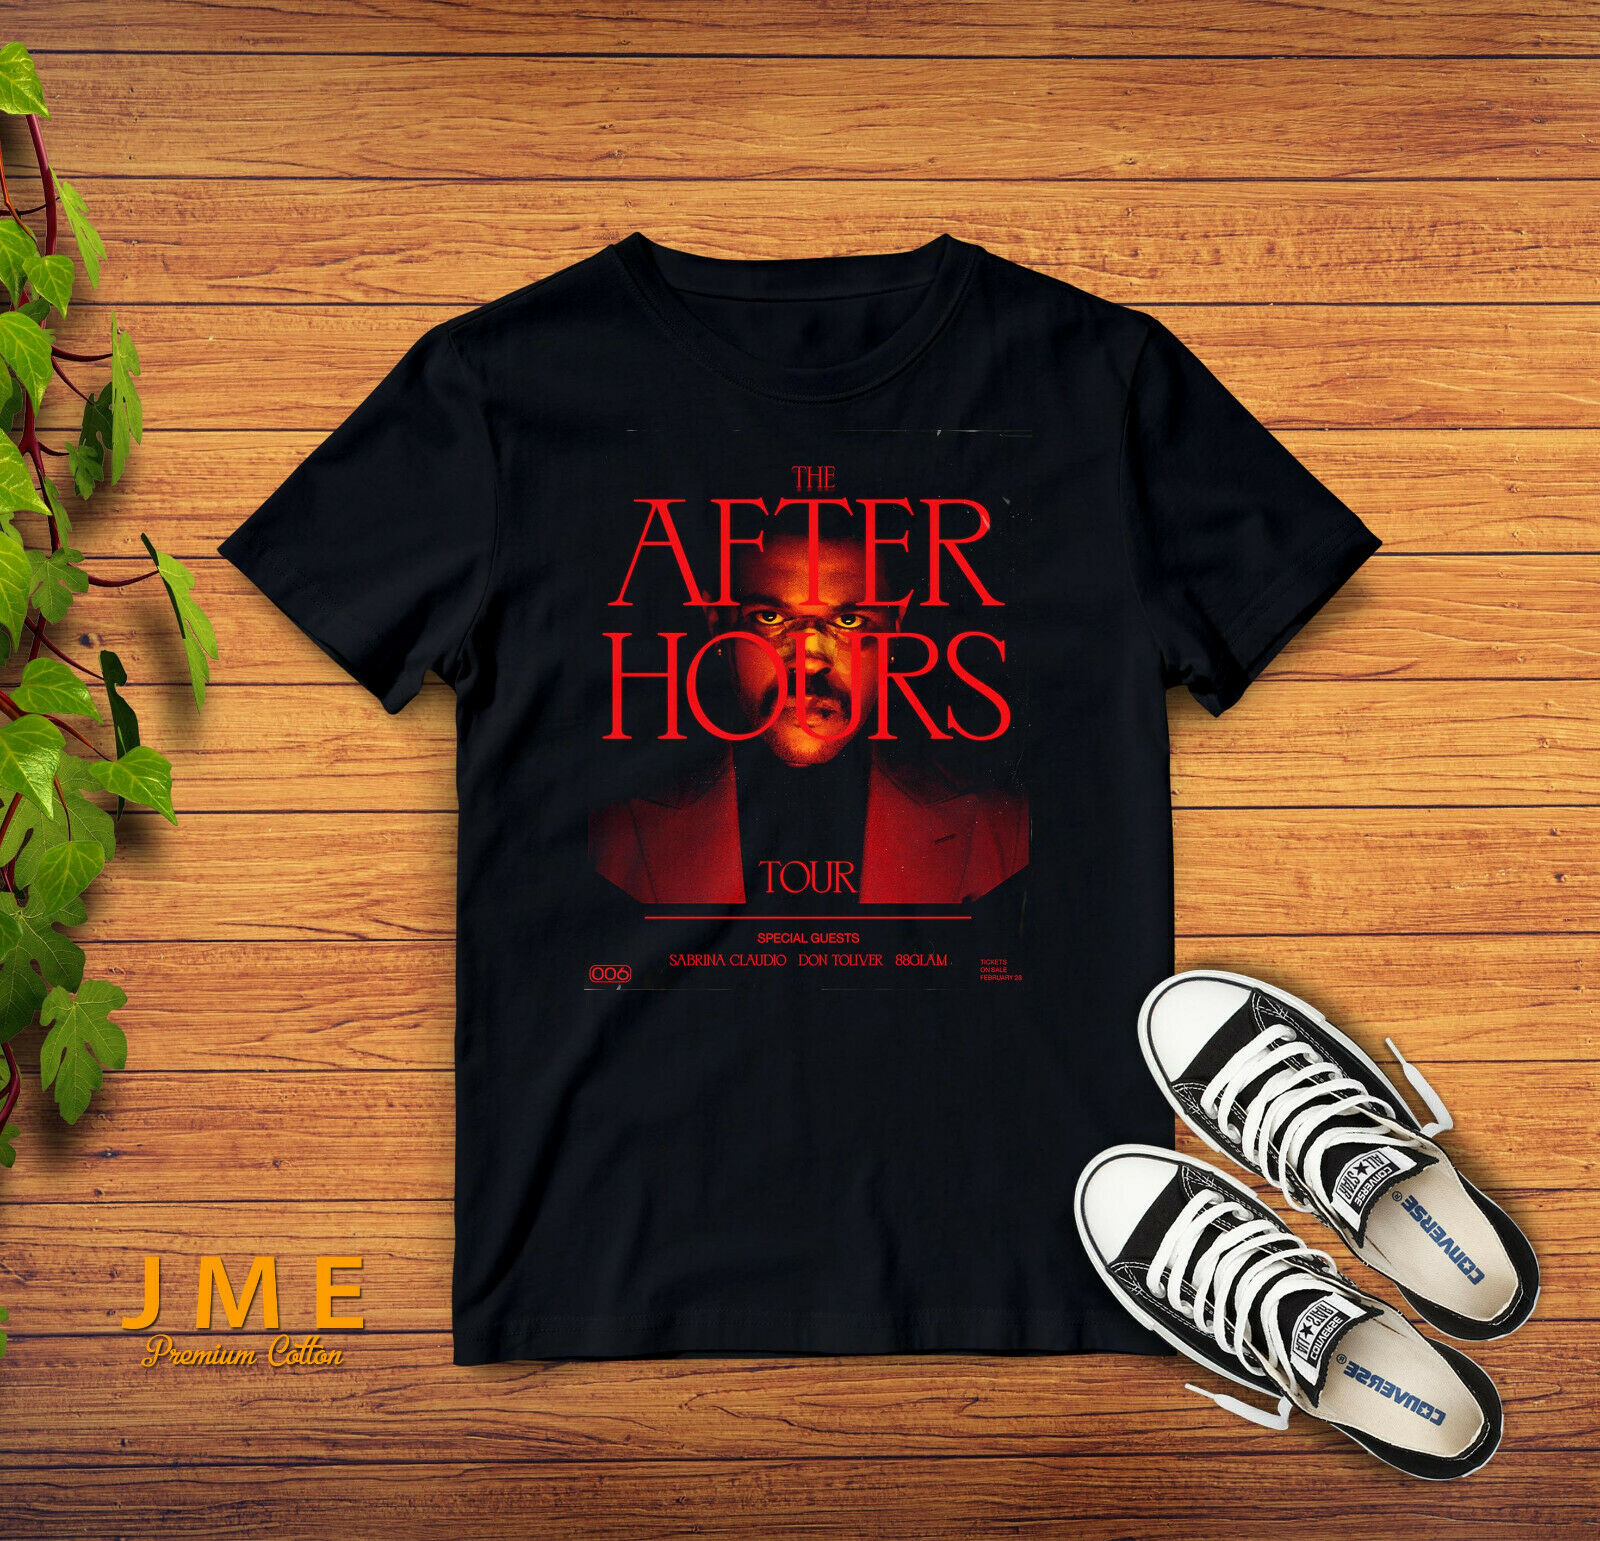 The Weeknd The After Hours Tour 2020 New T Shirt Soft Cotton Black S 2Xl